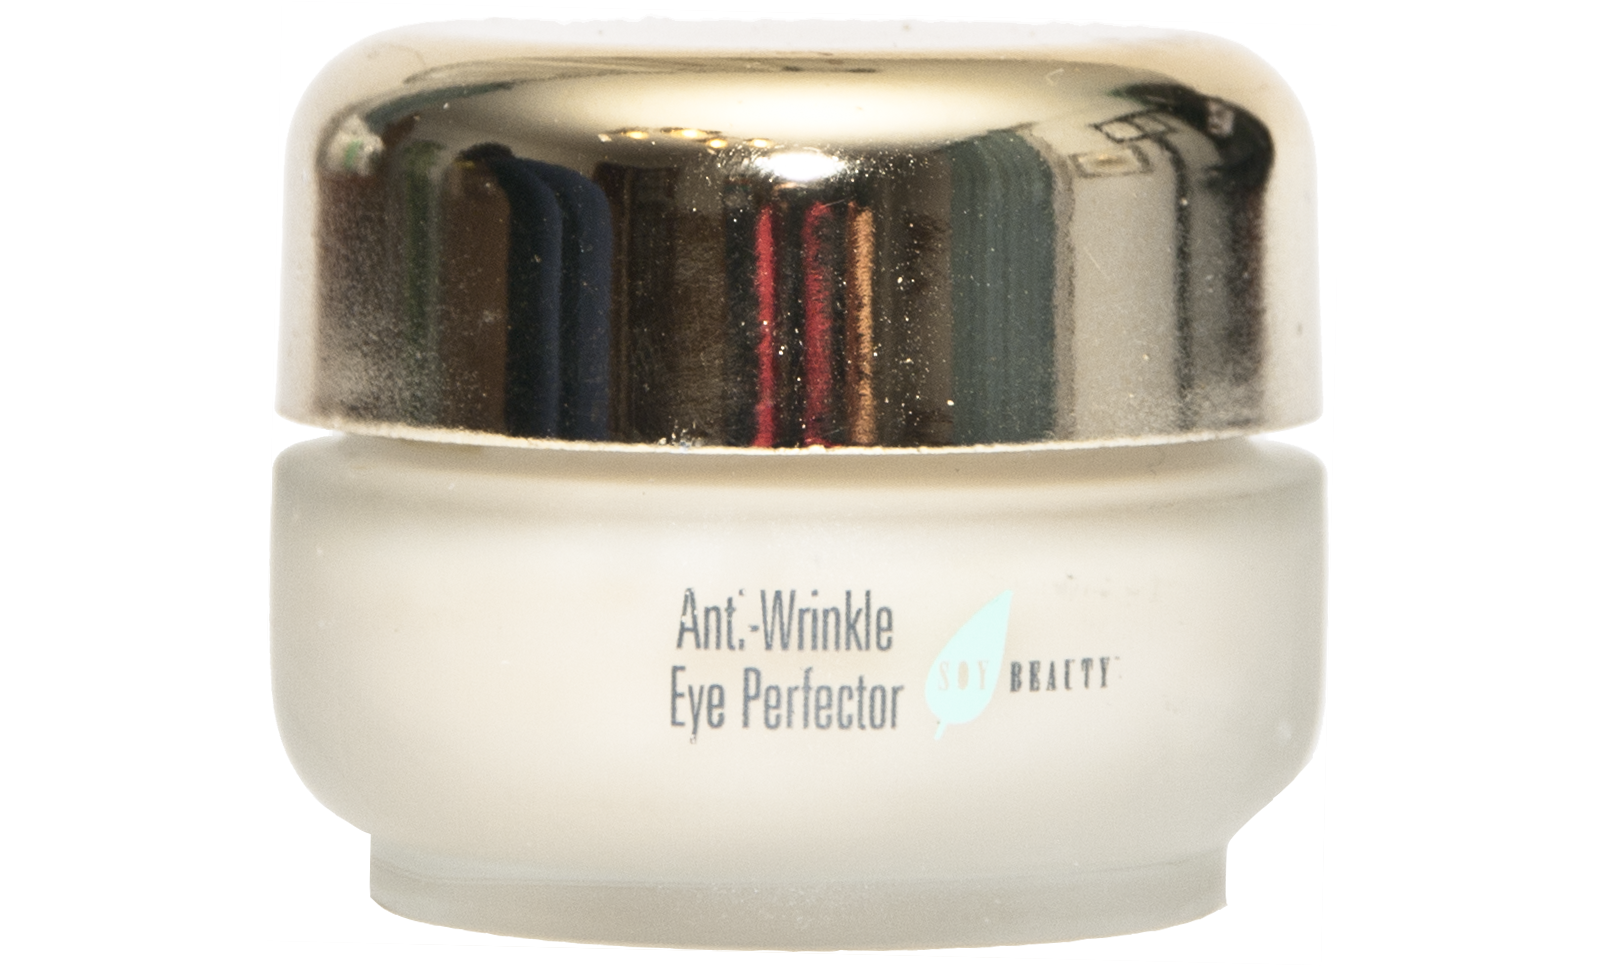 Soy Beauty® Anti-Wrinkle Eye Perfector with active fruit acids (AHA)